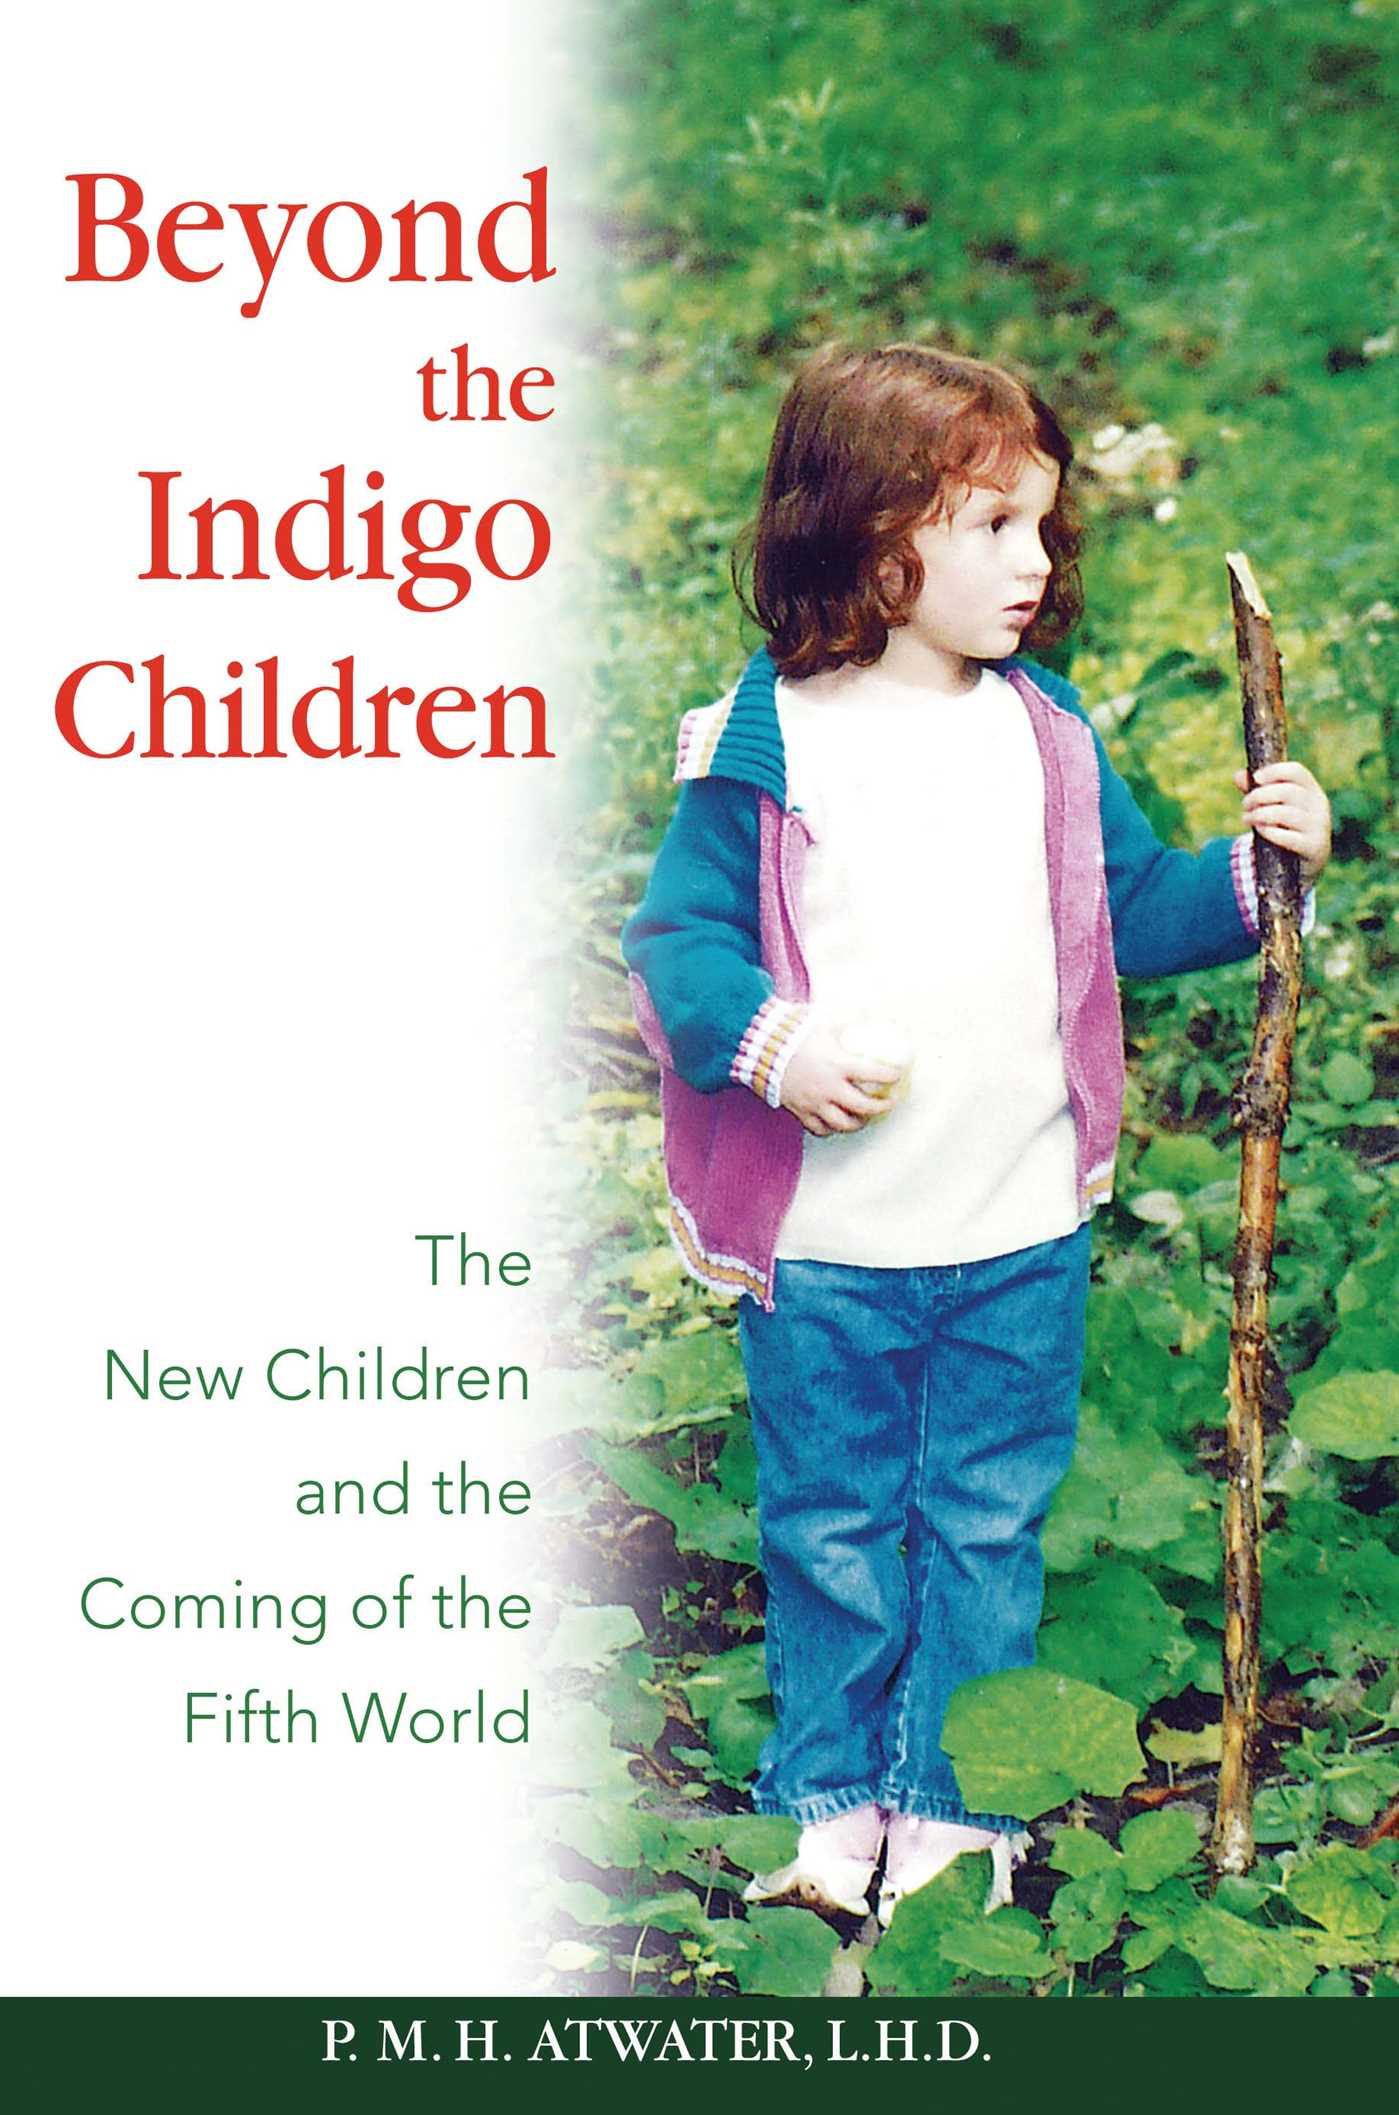 Beyond-the-indigo-children-9781591430513_hr